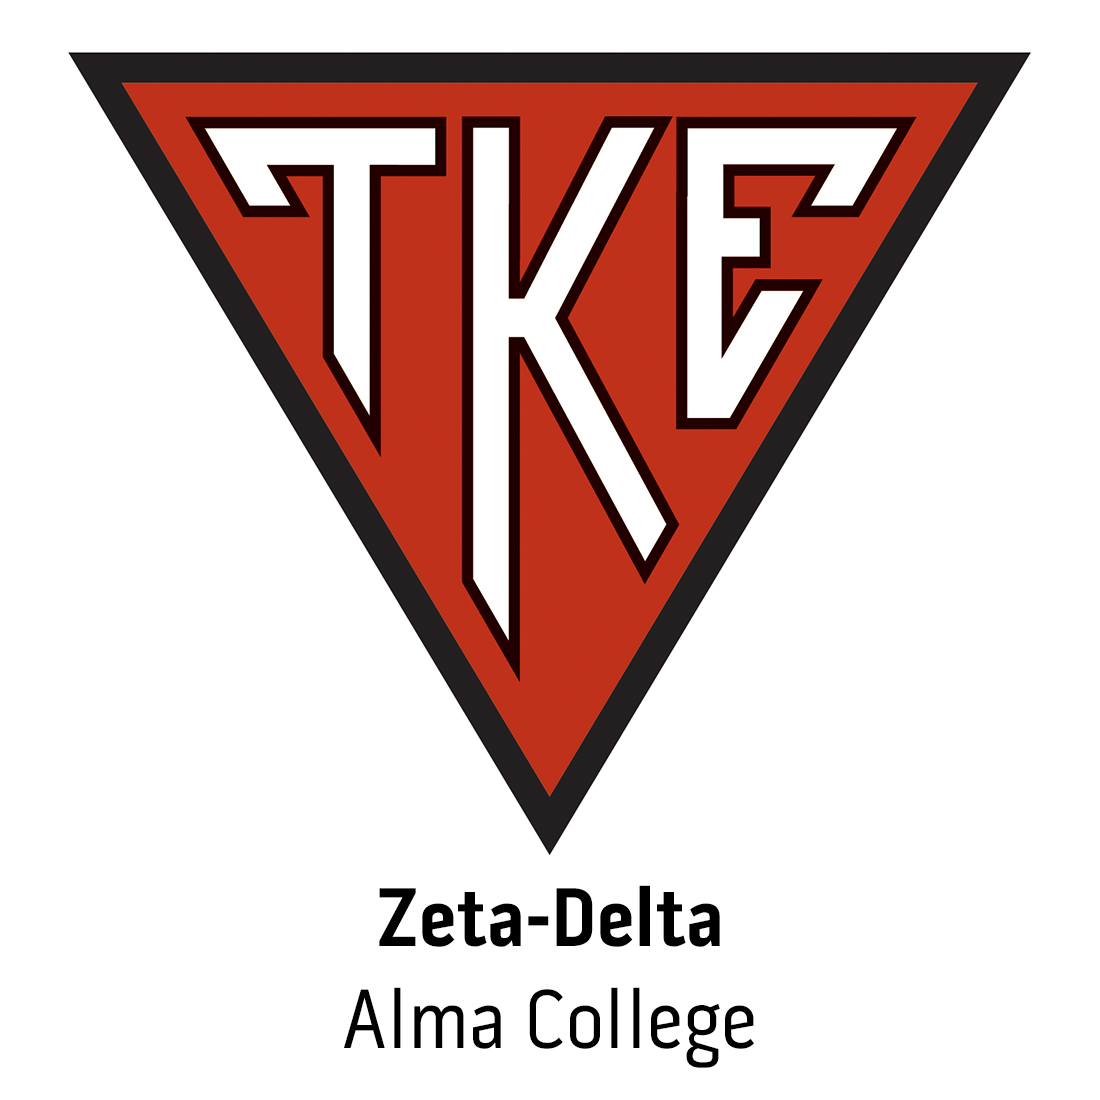 Zeta-Delta Chapter at Alma College